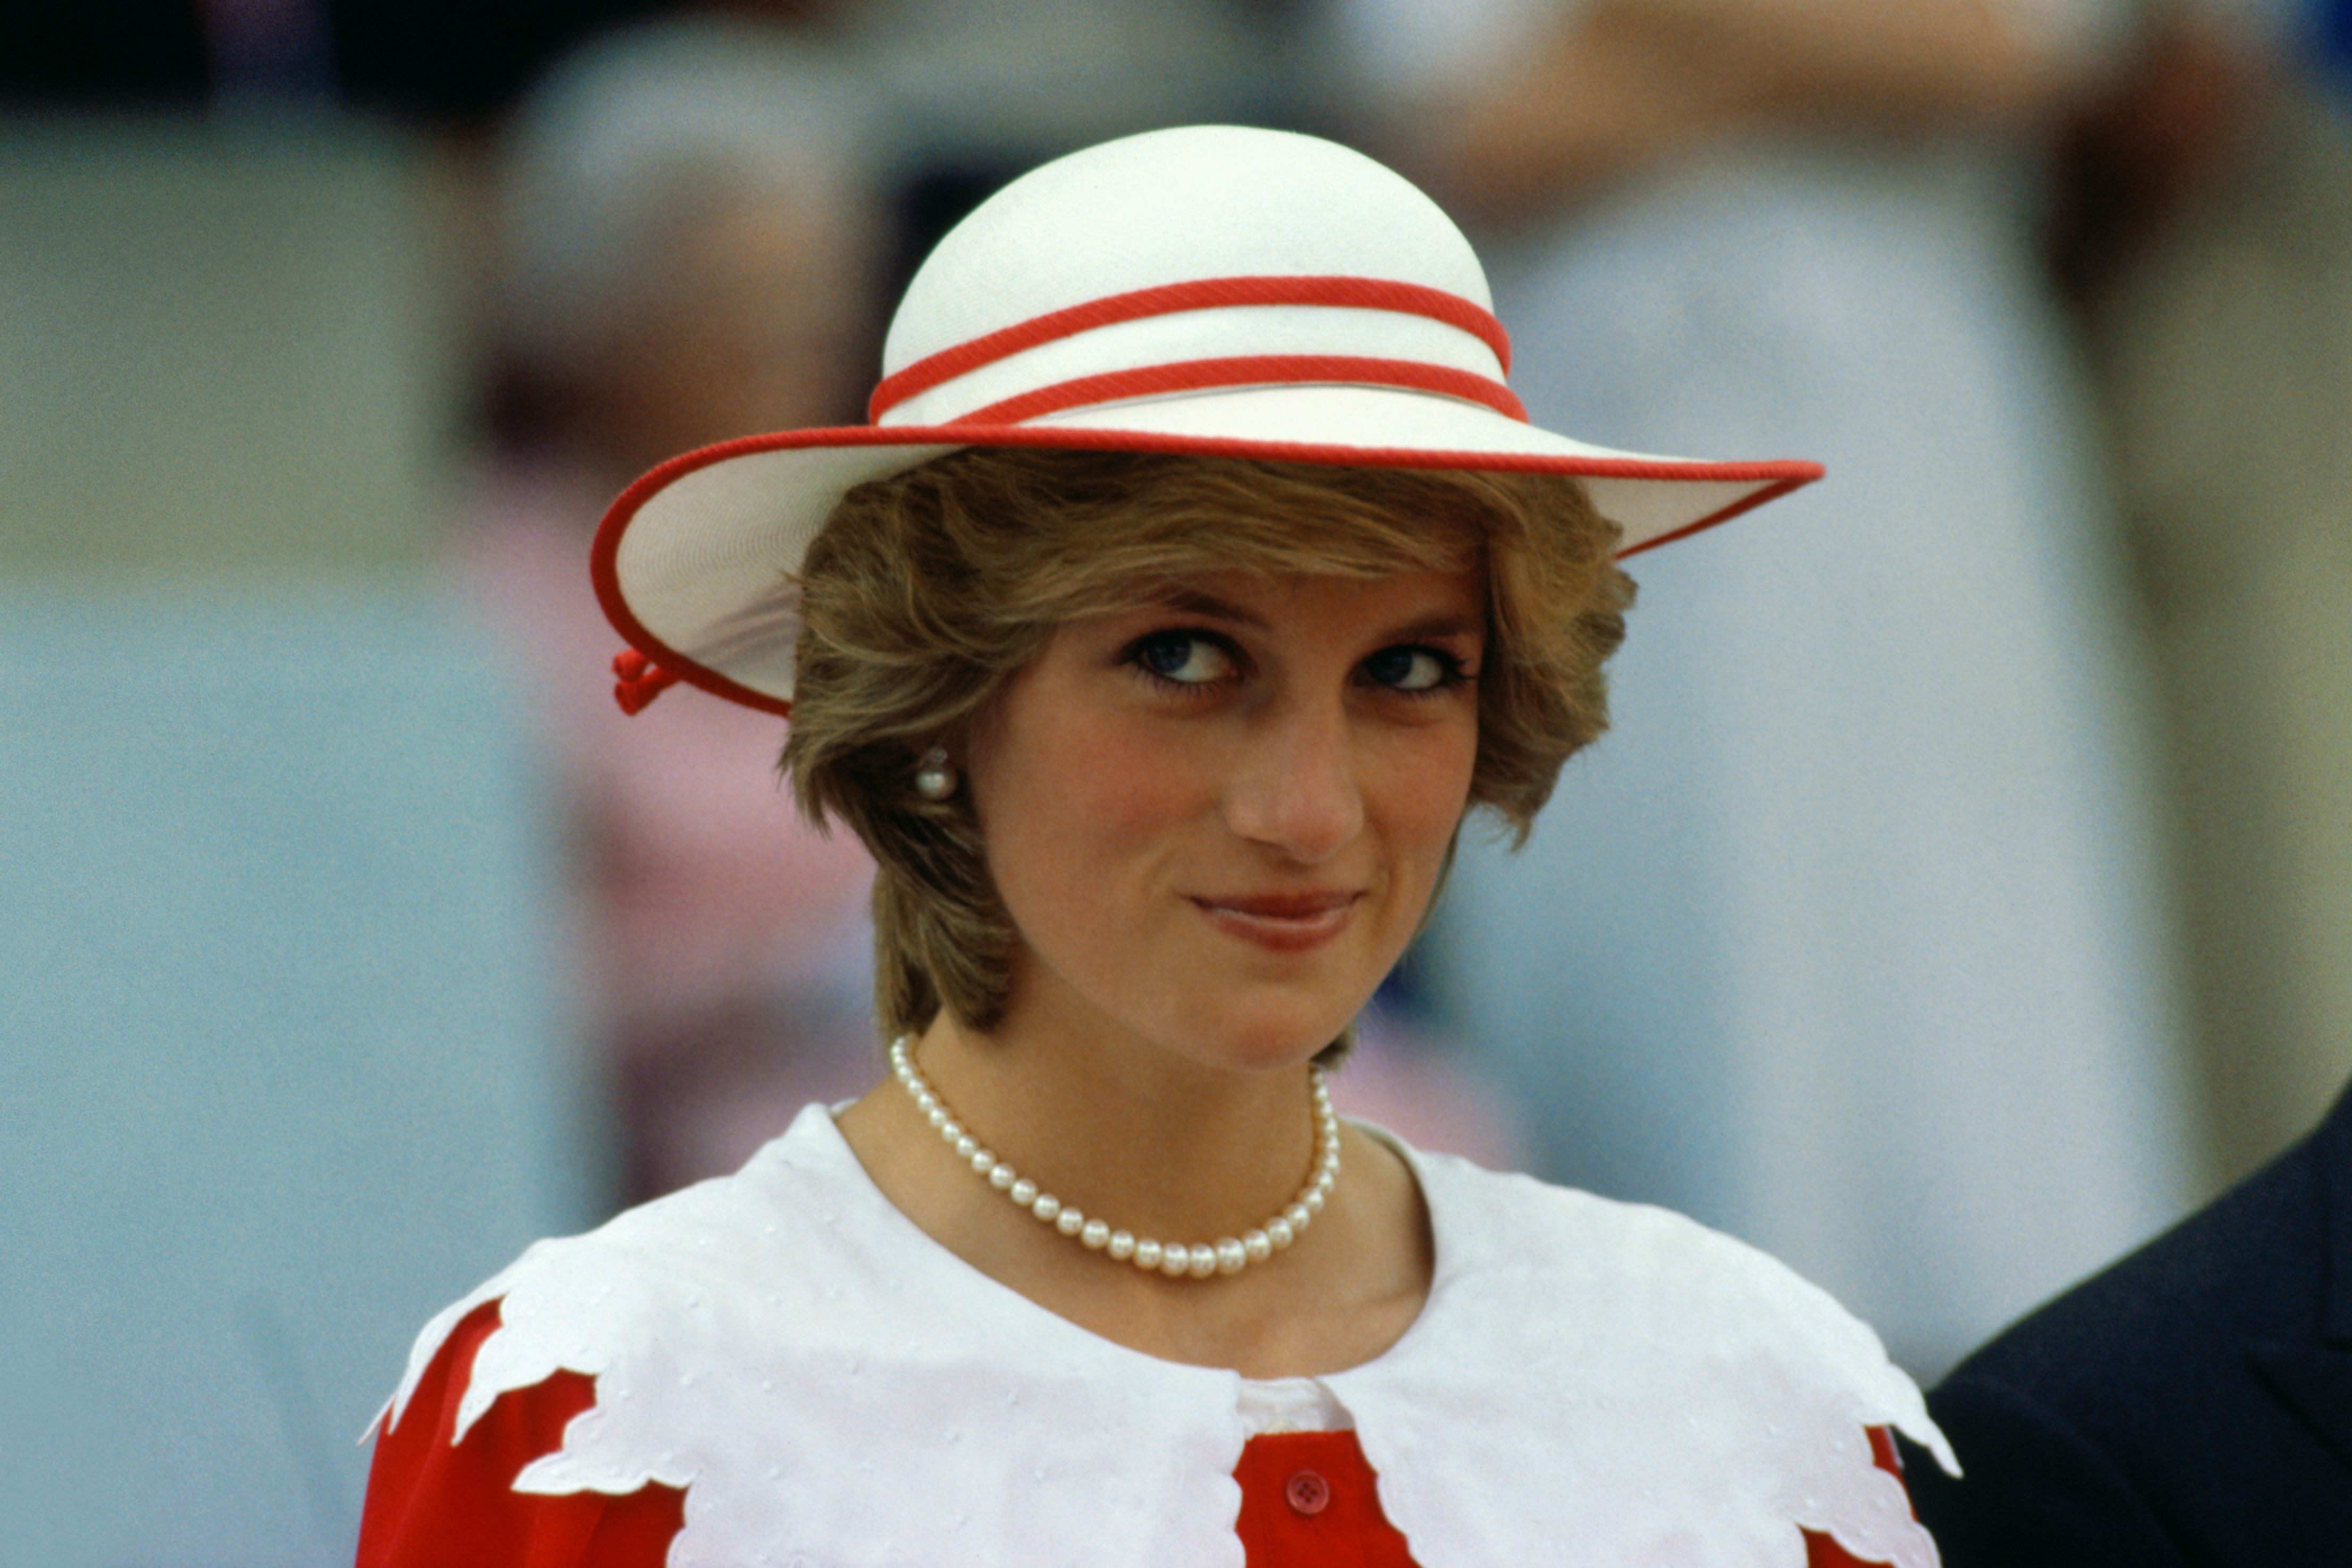 Everything We Know So Far About Princess Diana on 'The Crown'